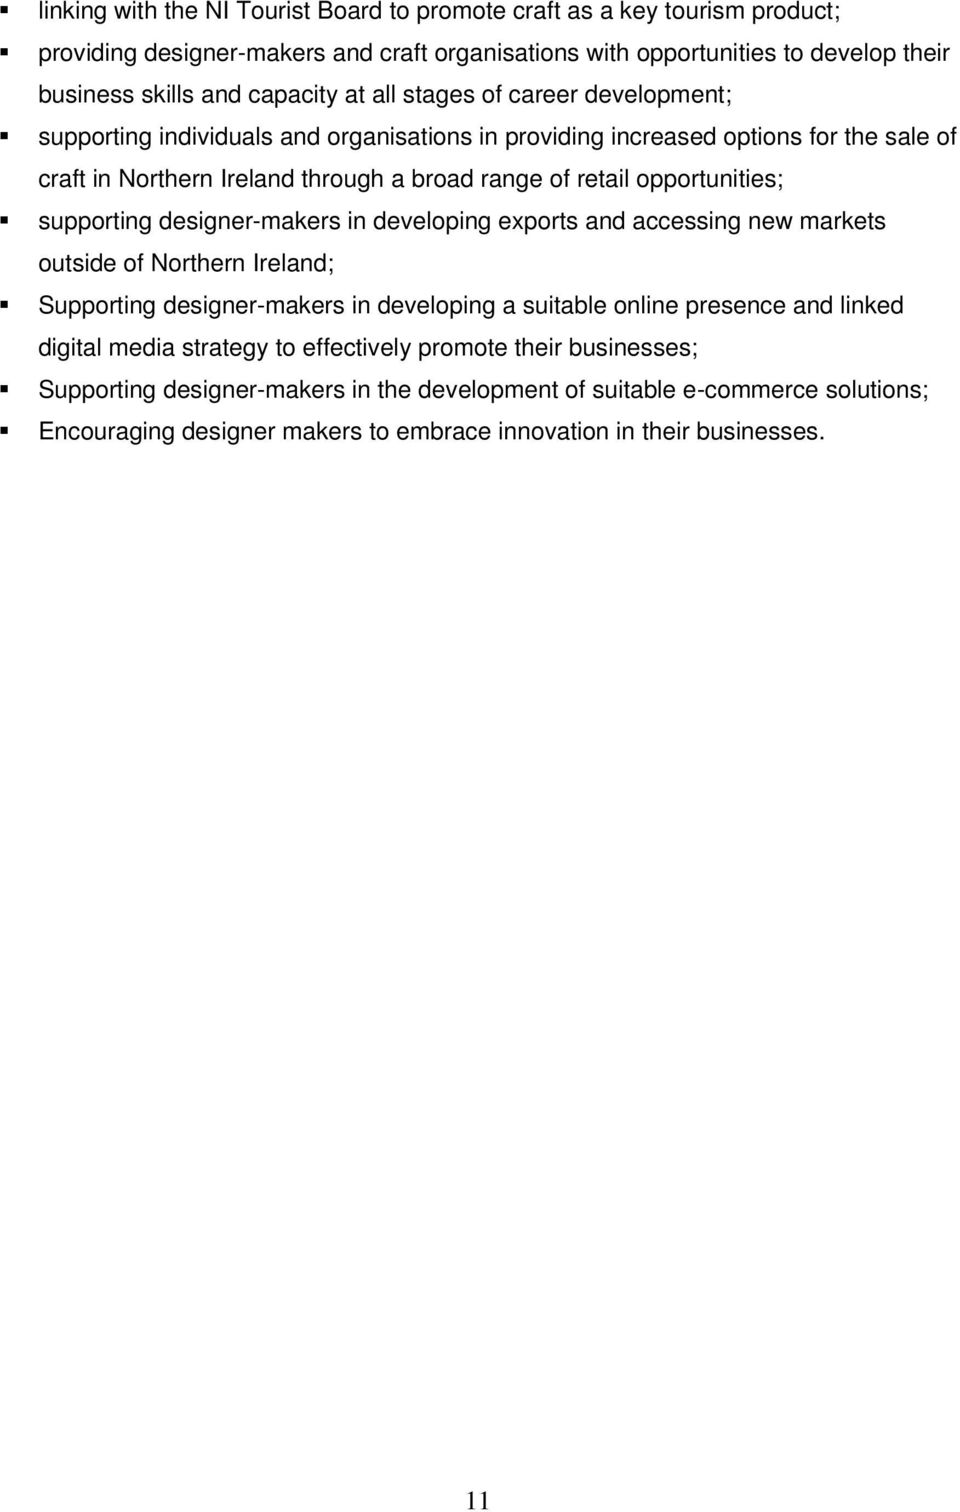 supporting designer-makers in developing exports and accessing new markets outside of Northern Ireland; Supporting designer-makers in developing a suitable online presence and linked digital media